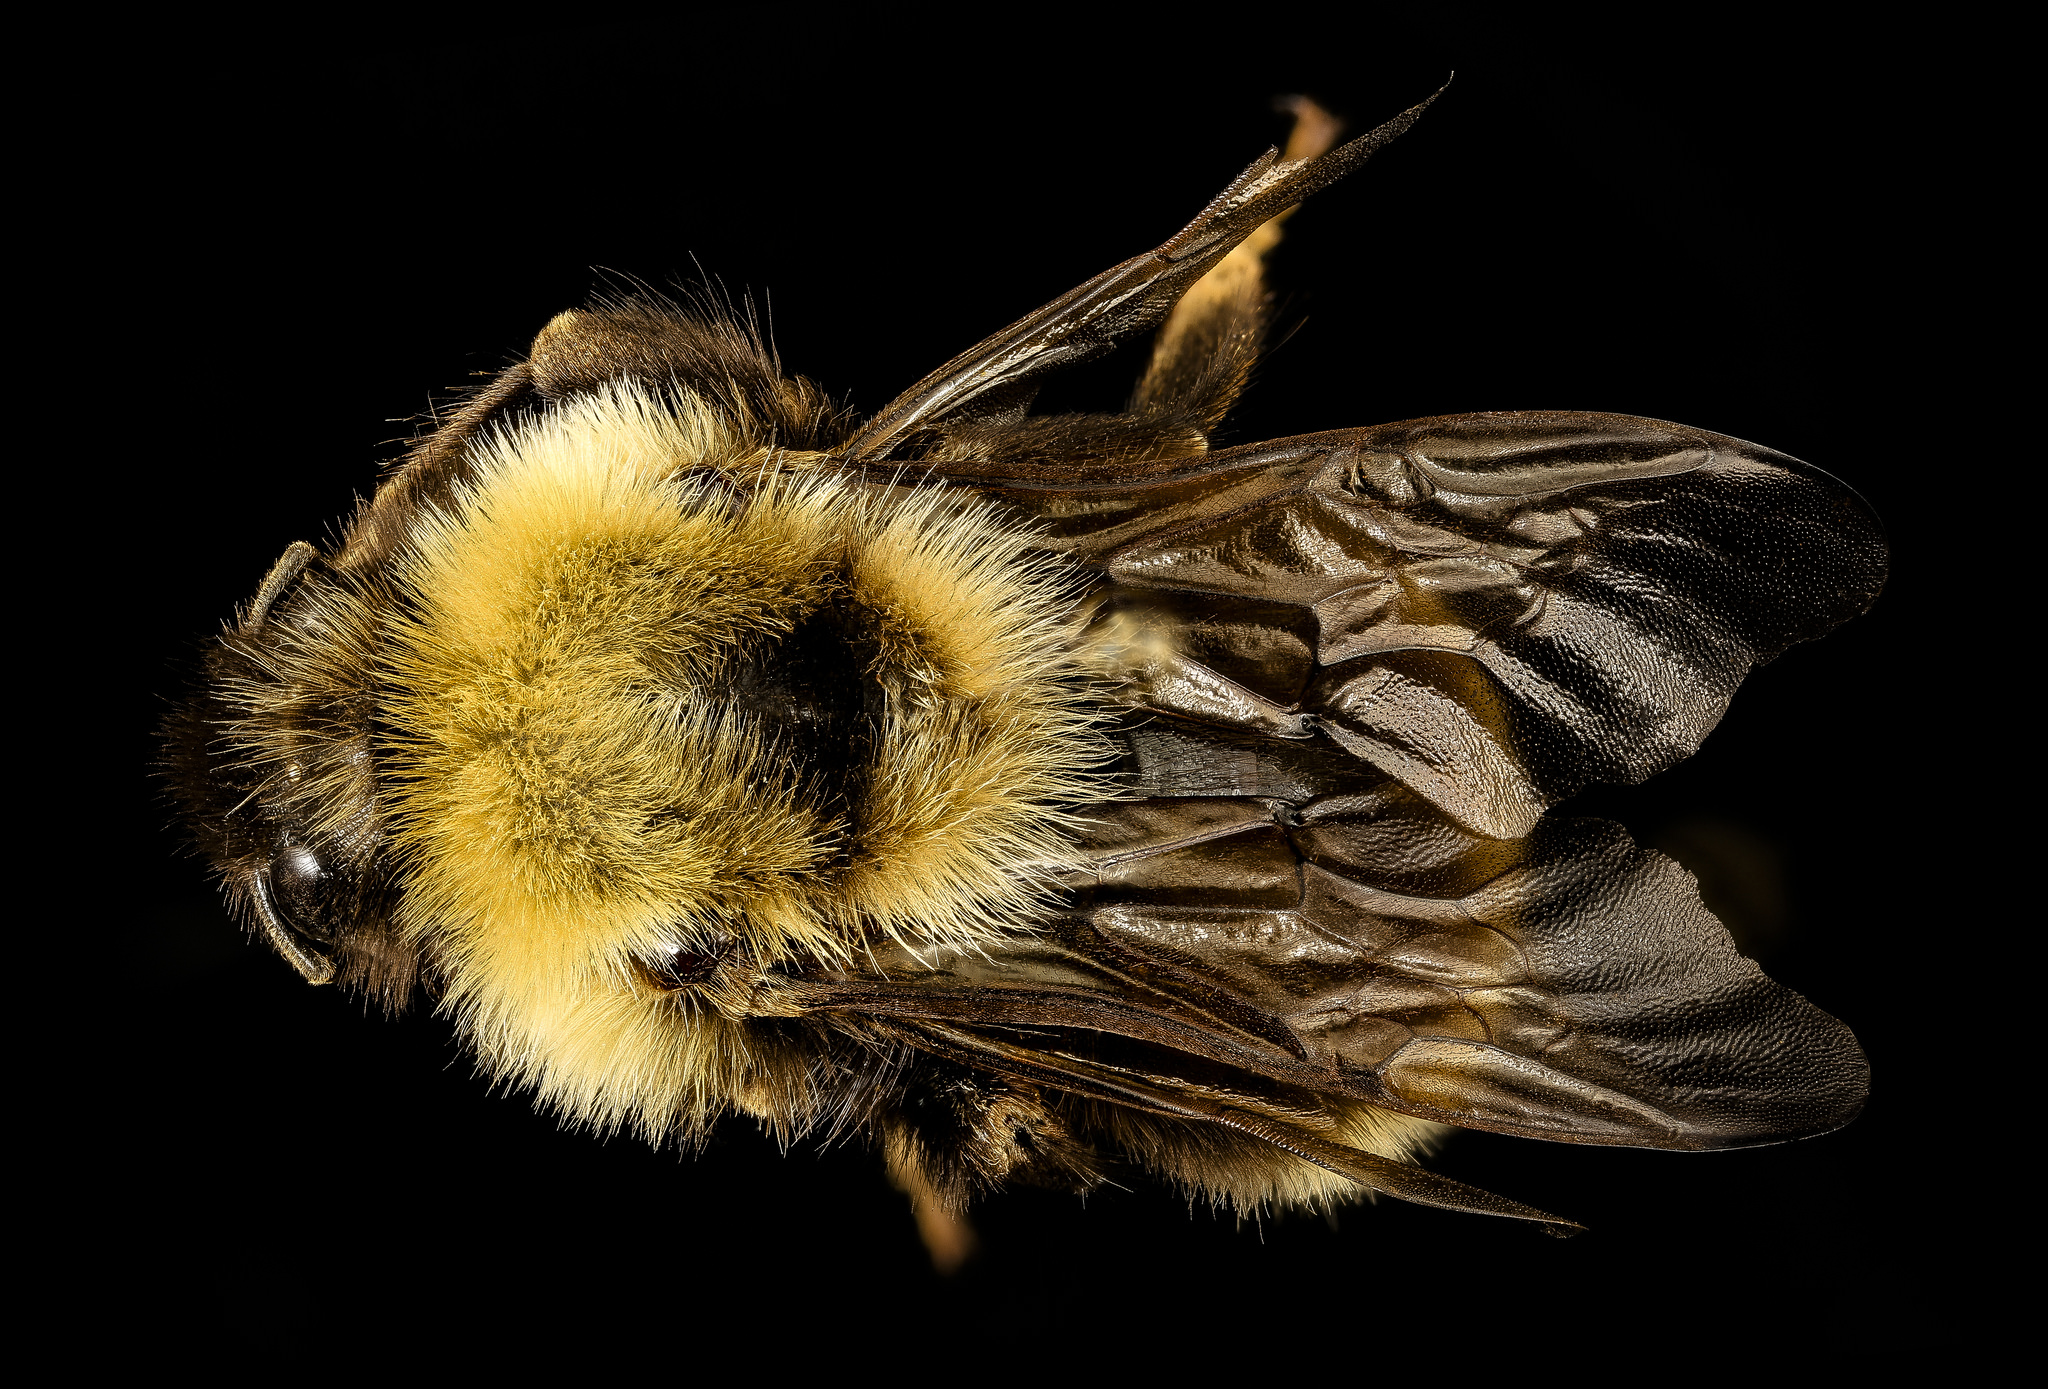 Bombus affinis, the rusty patched bumblebee.